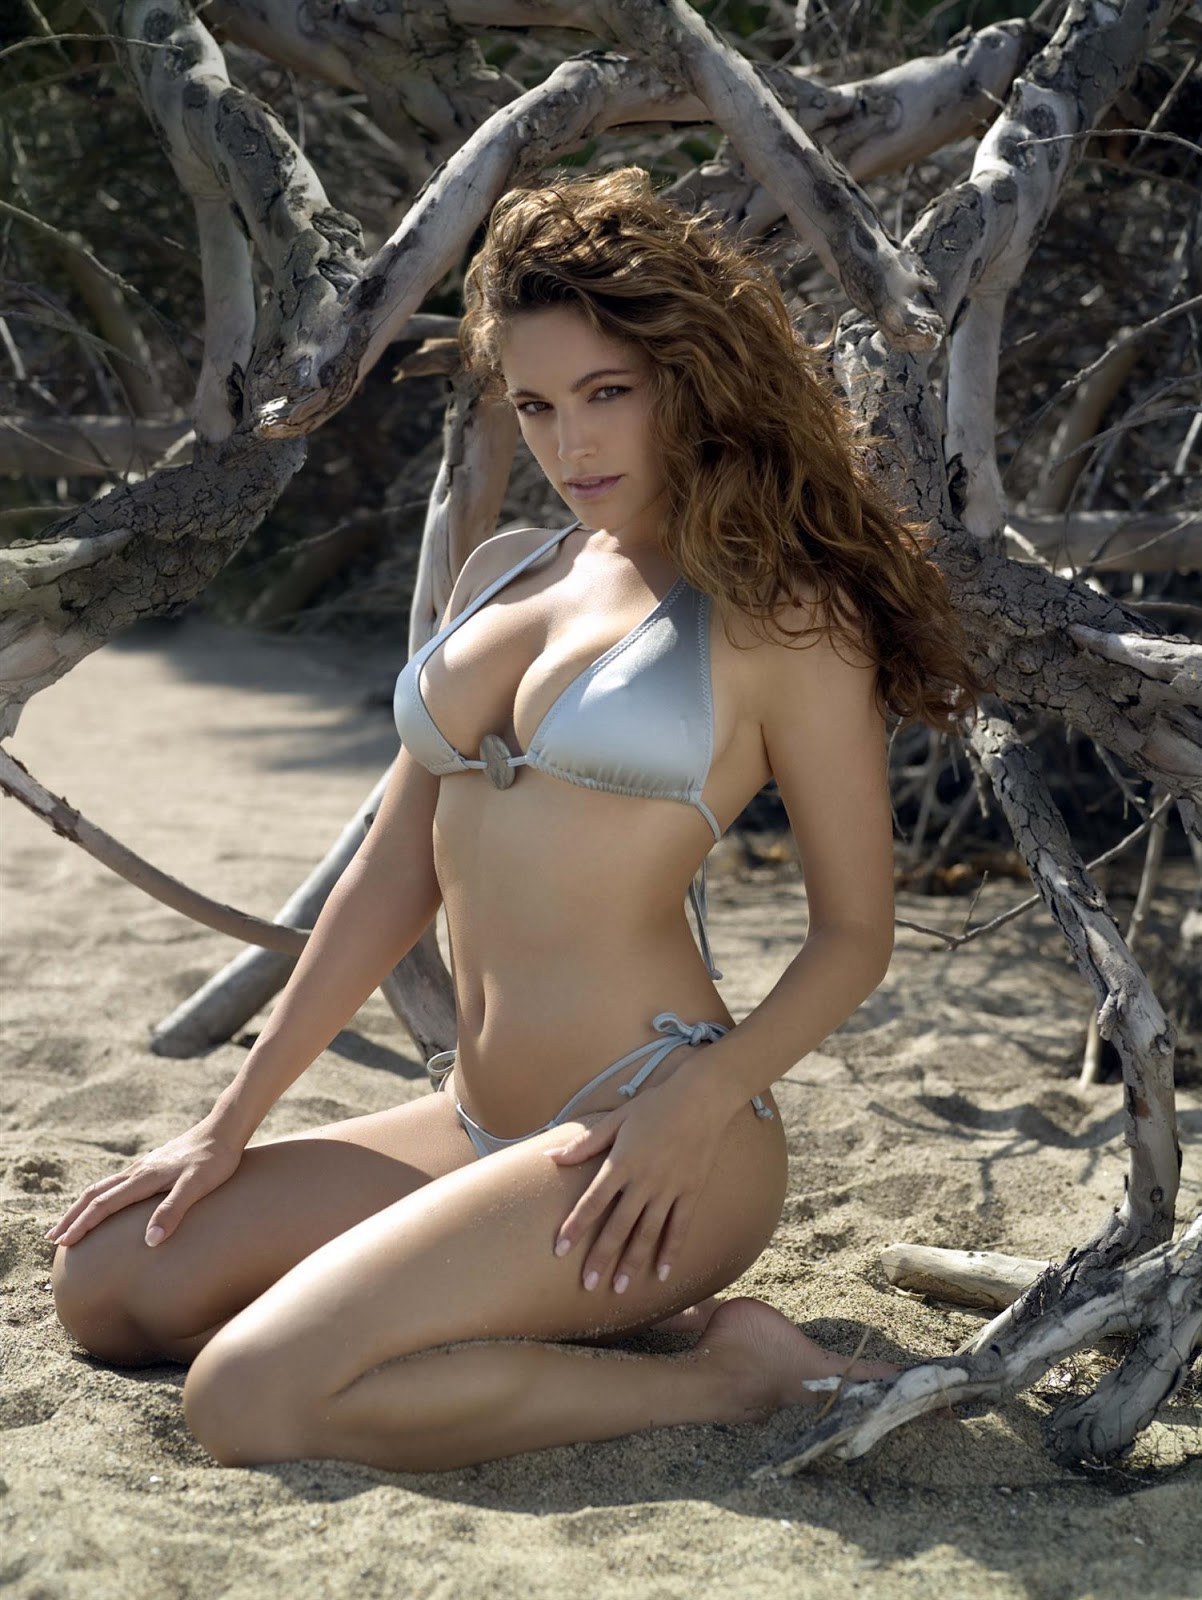 Kelly+Brook+2007+Calendar+11 18 Best Kelly Brook Photos in Swimwear